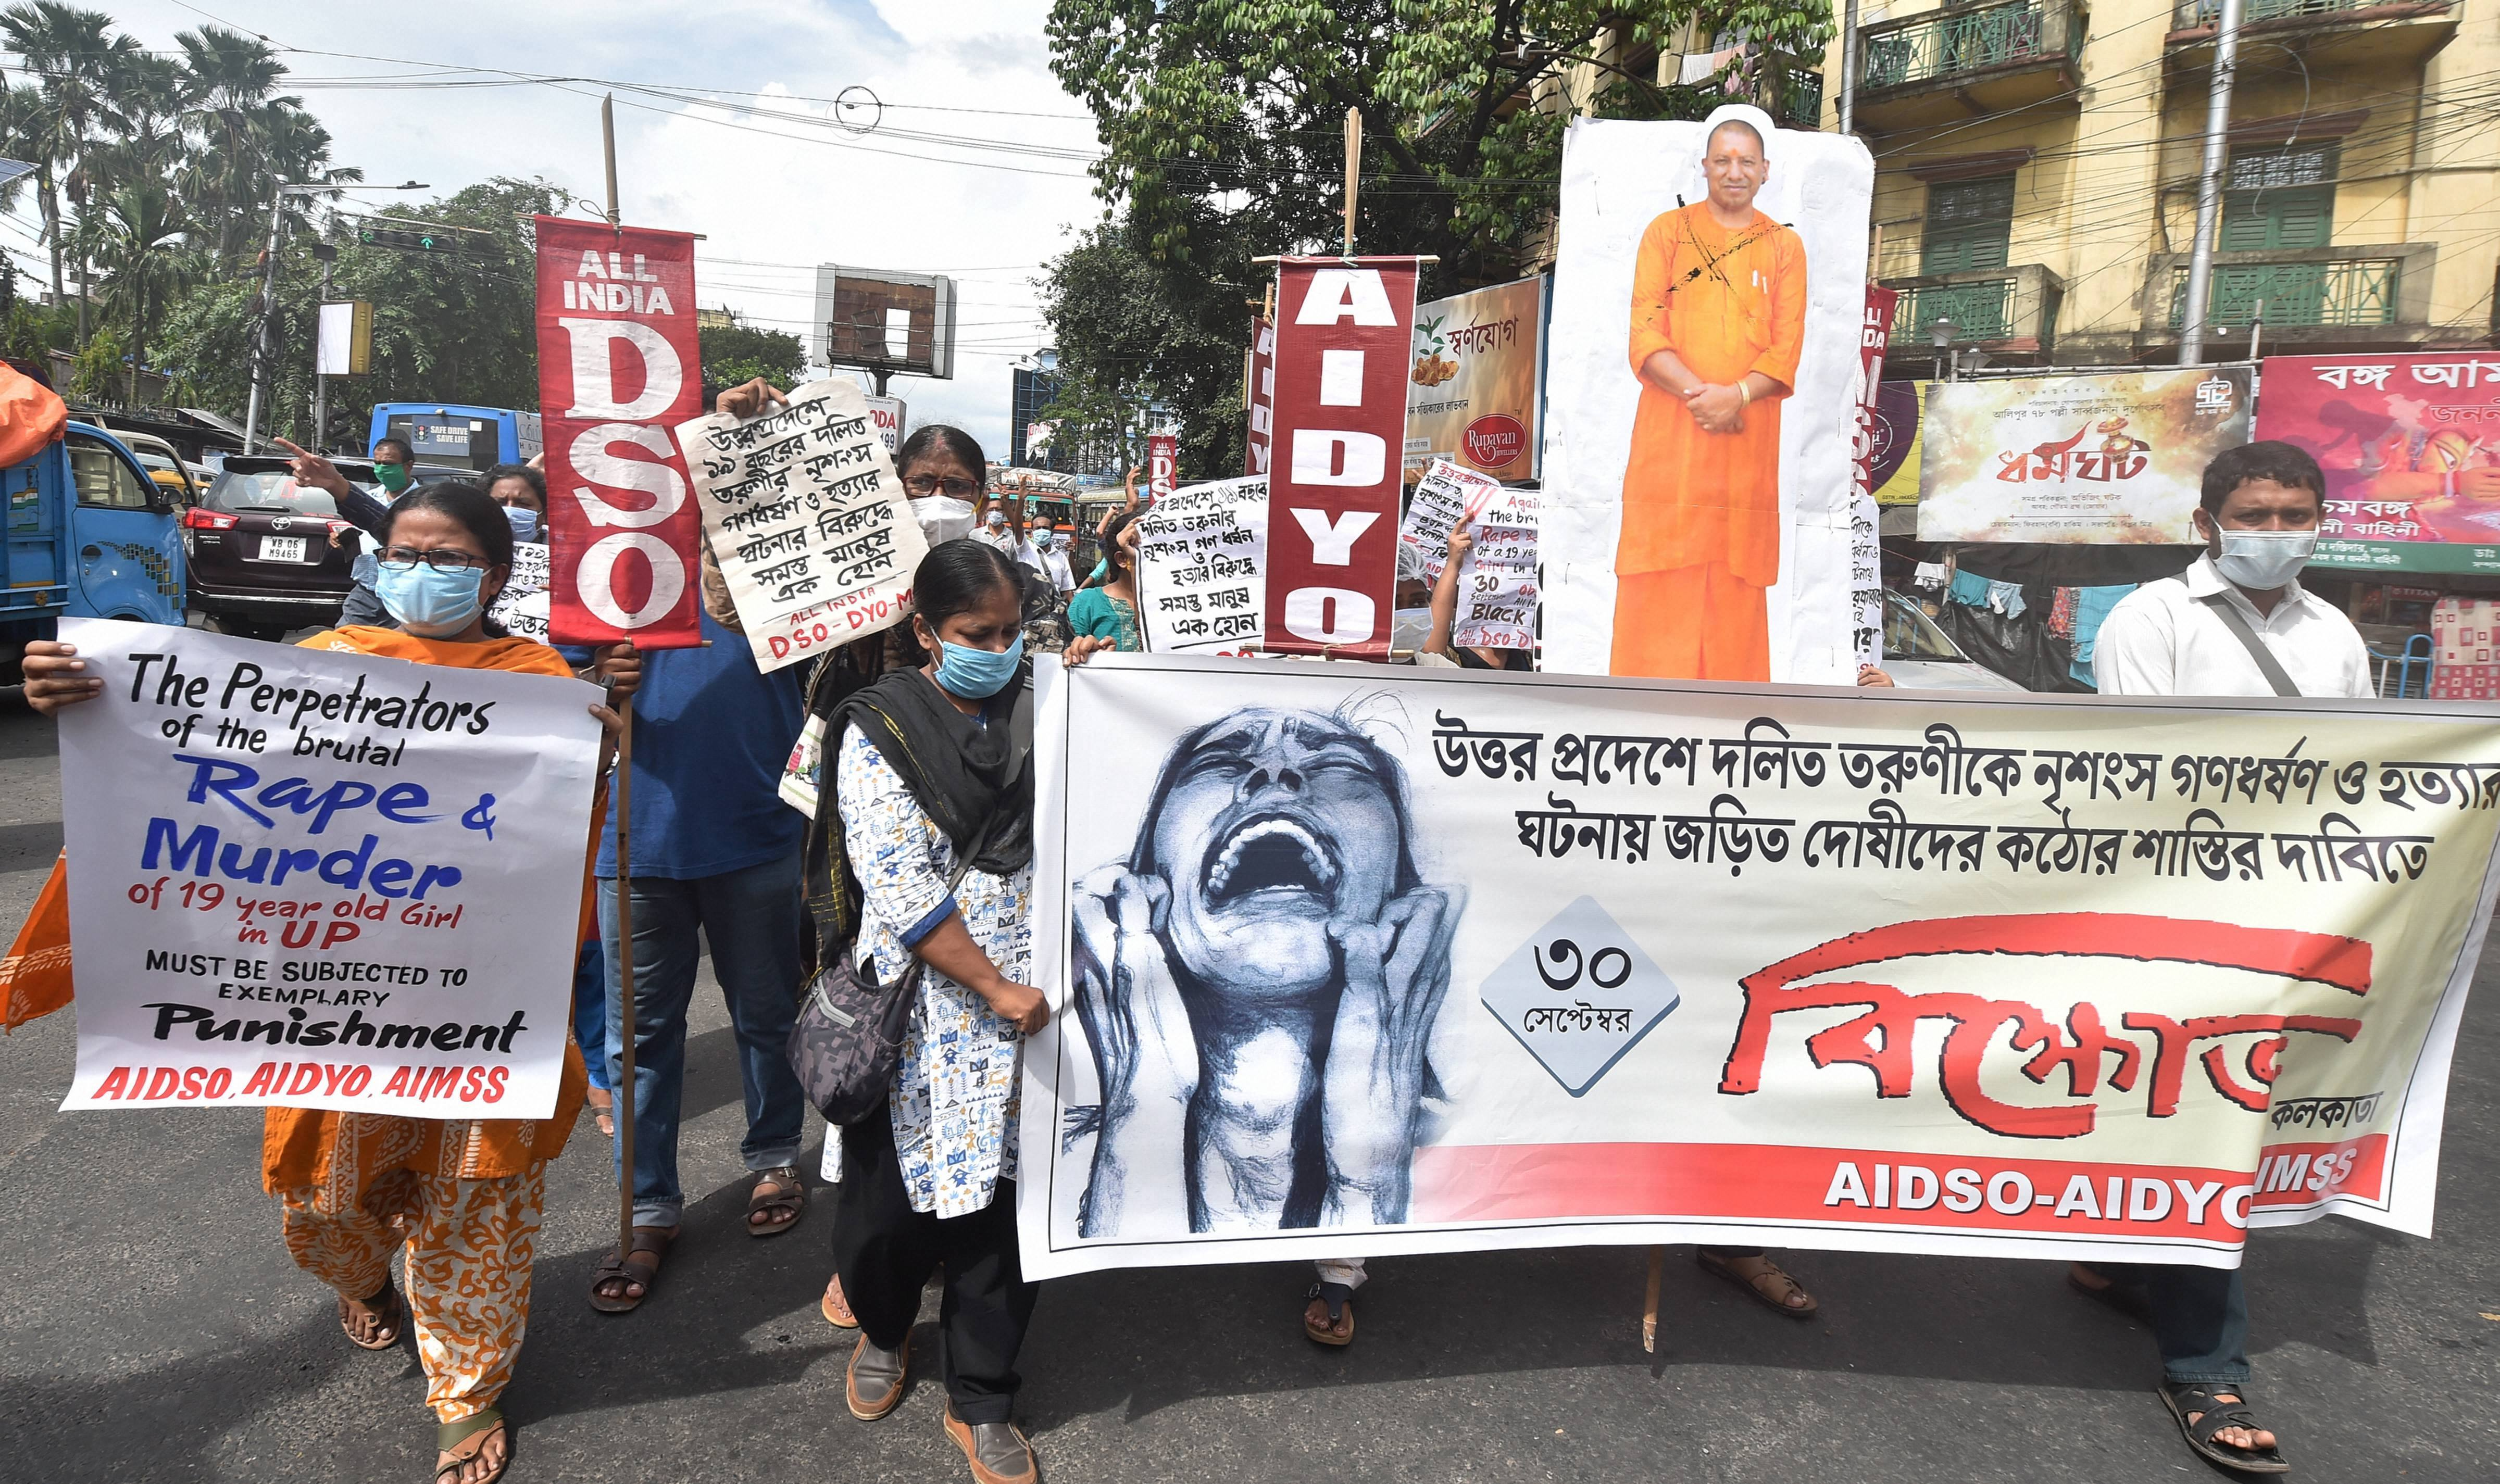 Kolkata: Activists of Socialist Unity Centre of India (SUCI) hold placards and a cutout of Chief Minister Yogi Adityanath during a protest over the death of Hathras gang-rape victim, in Kolkata, Wednesday, Sept 30, 2020. (PTI Photo/Swapan Mahapatra)(PTI30-09-2020_000151B)